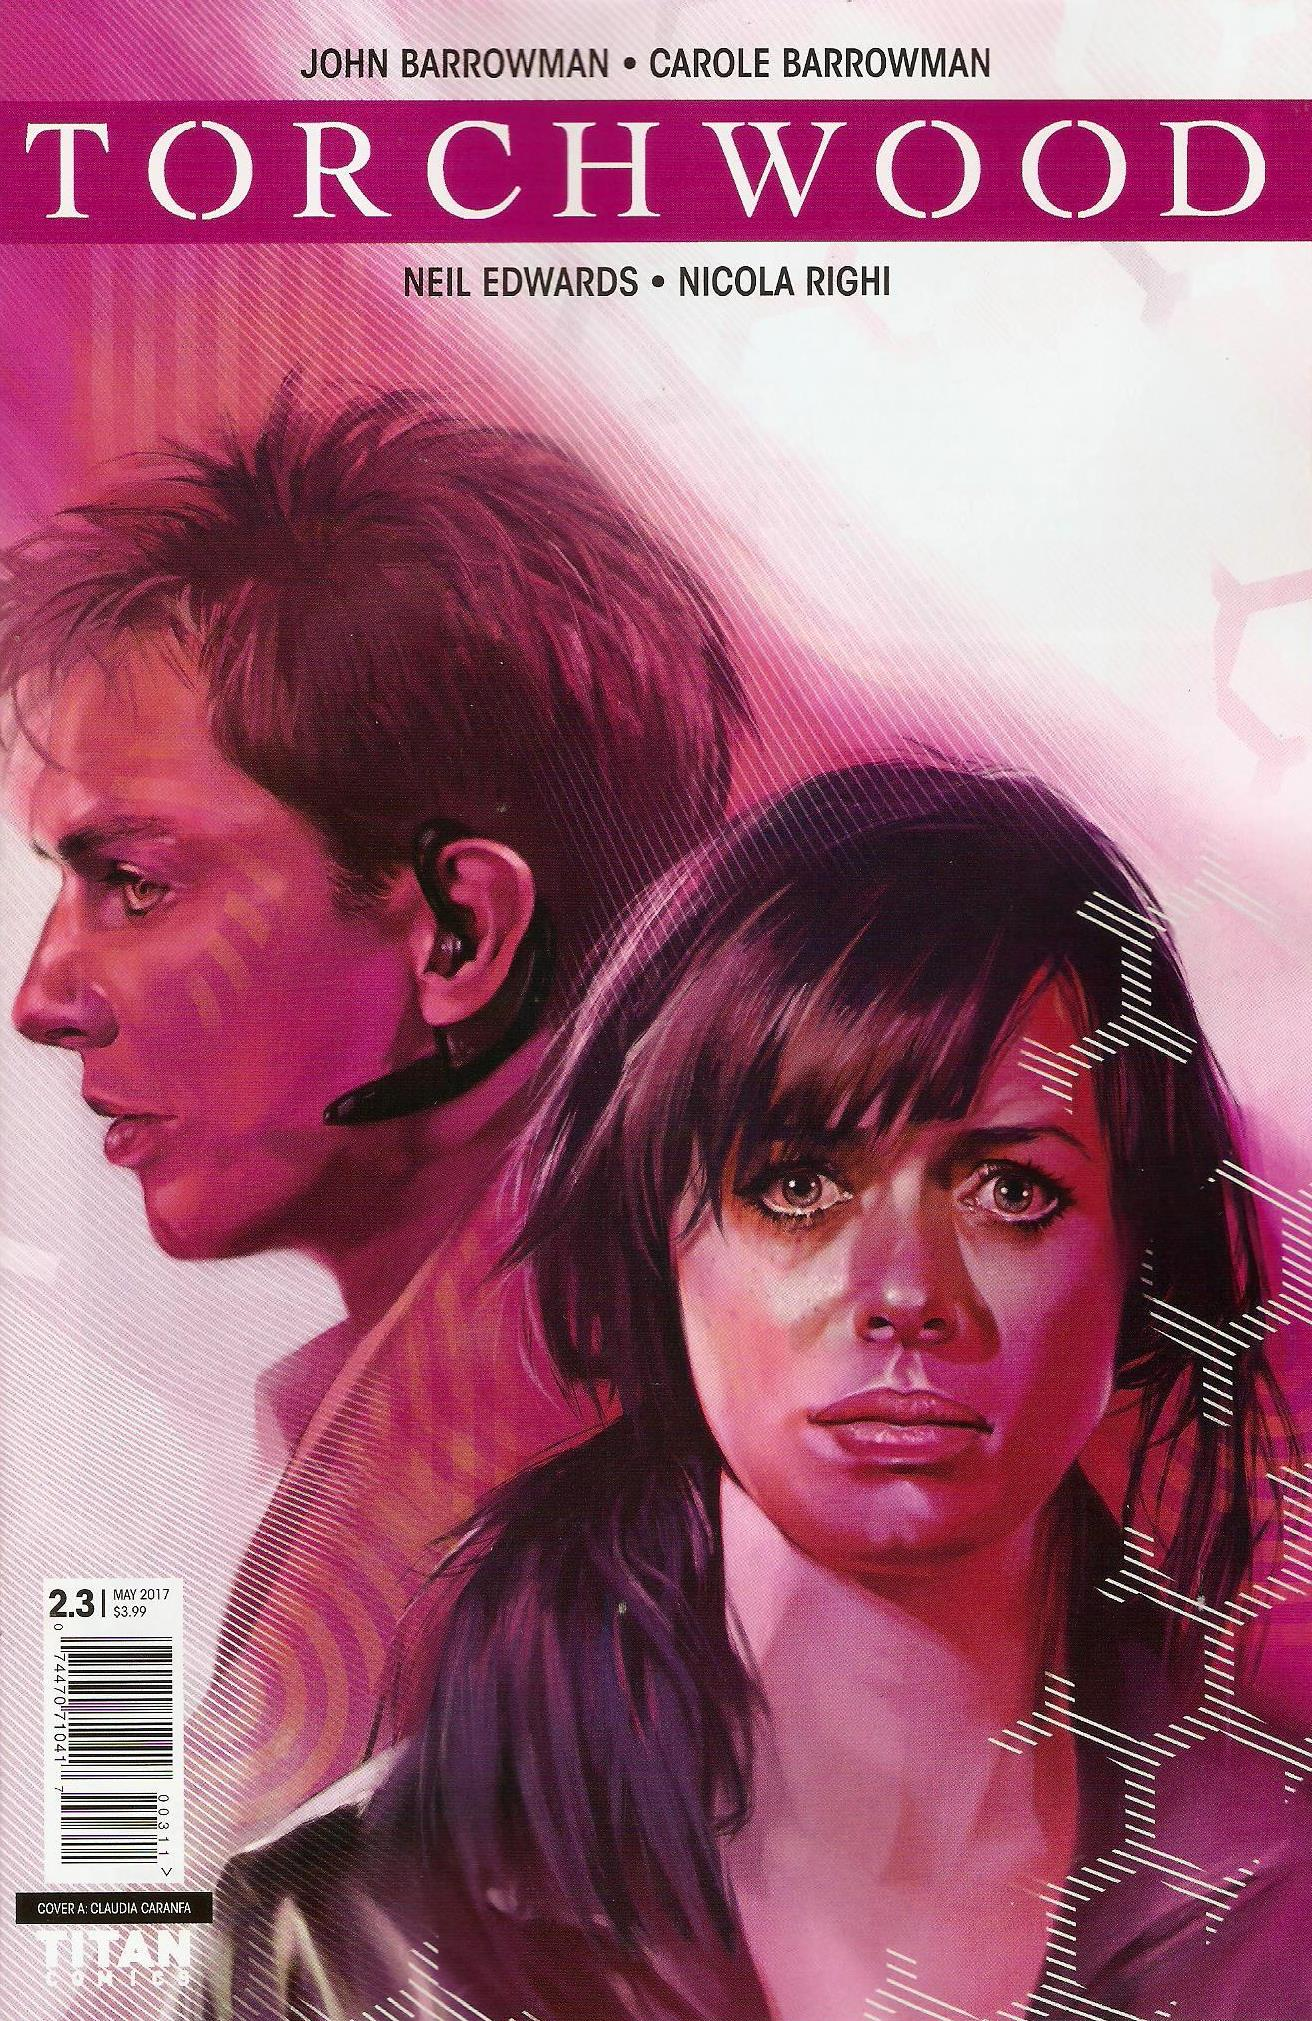 Torchwood 2 issue 3a